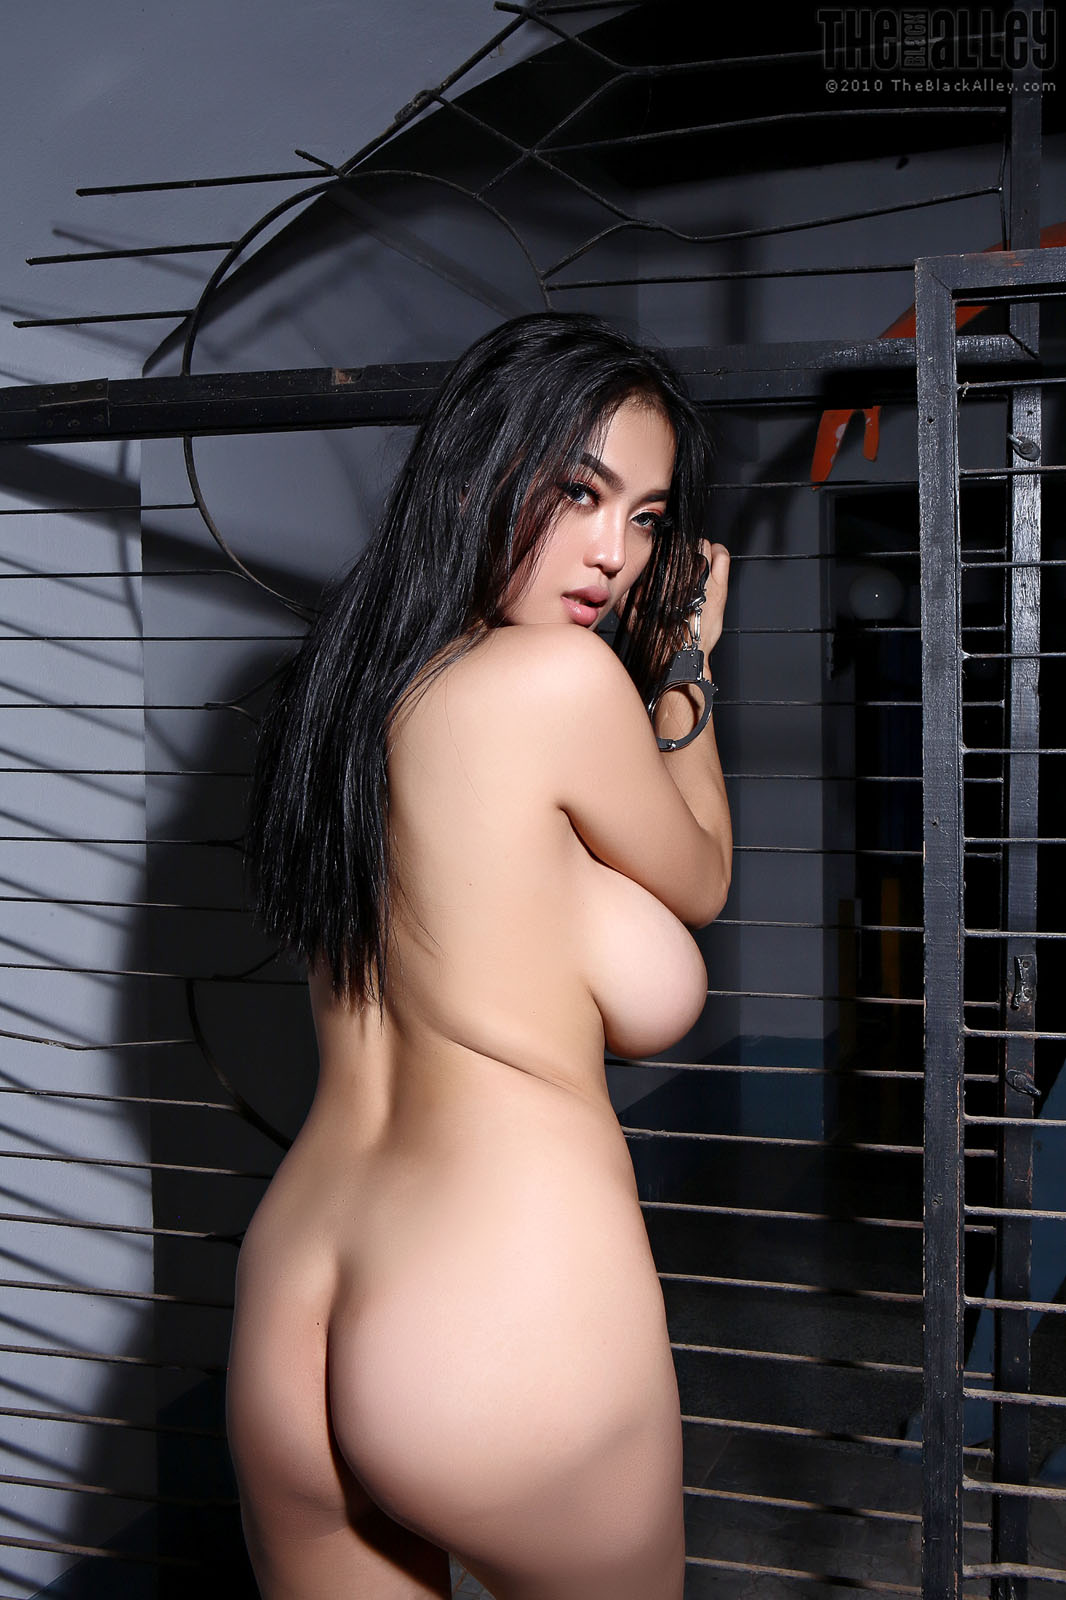 Pitta Kinky The Black Alley - Curvy Erotic